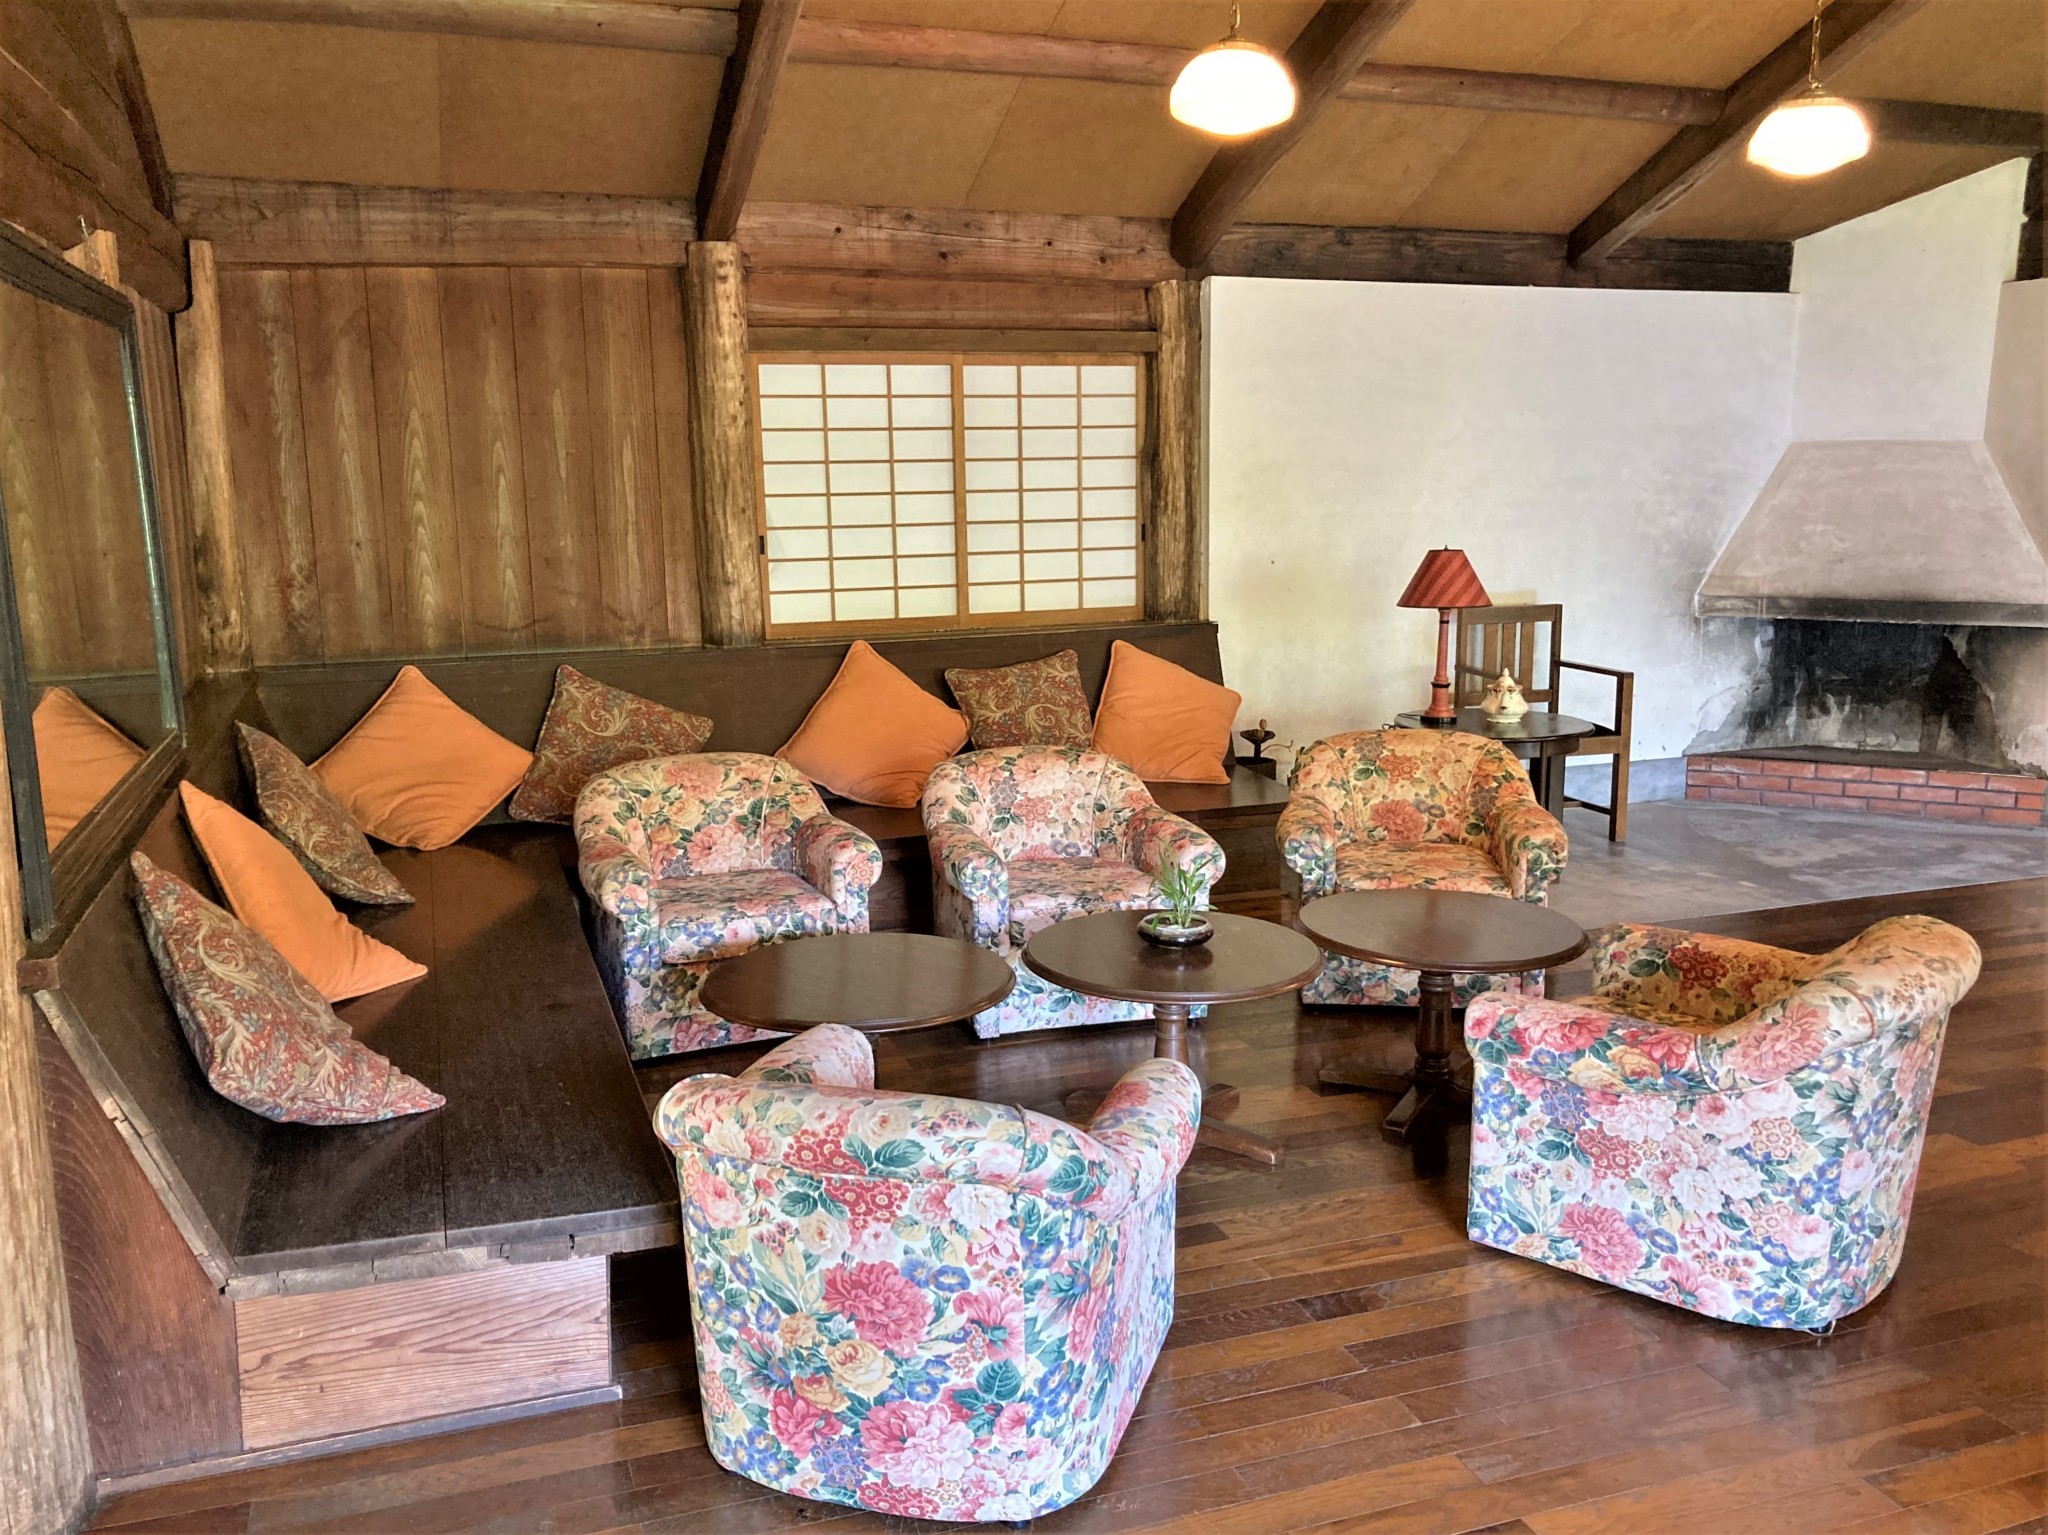 The lounge of the Eikokukan clubhouse in Hinokage, Japan decorated with flower-patterned chairs, wooden benches and a traditional fireplace.